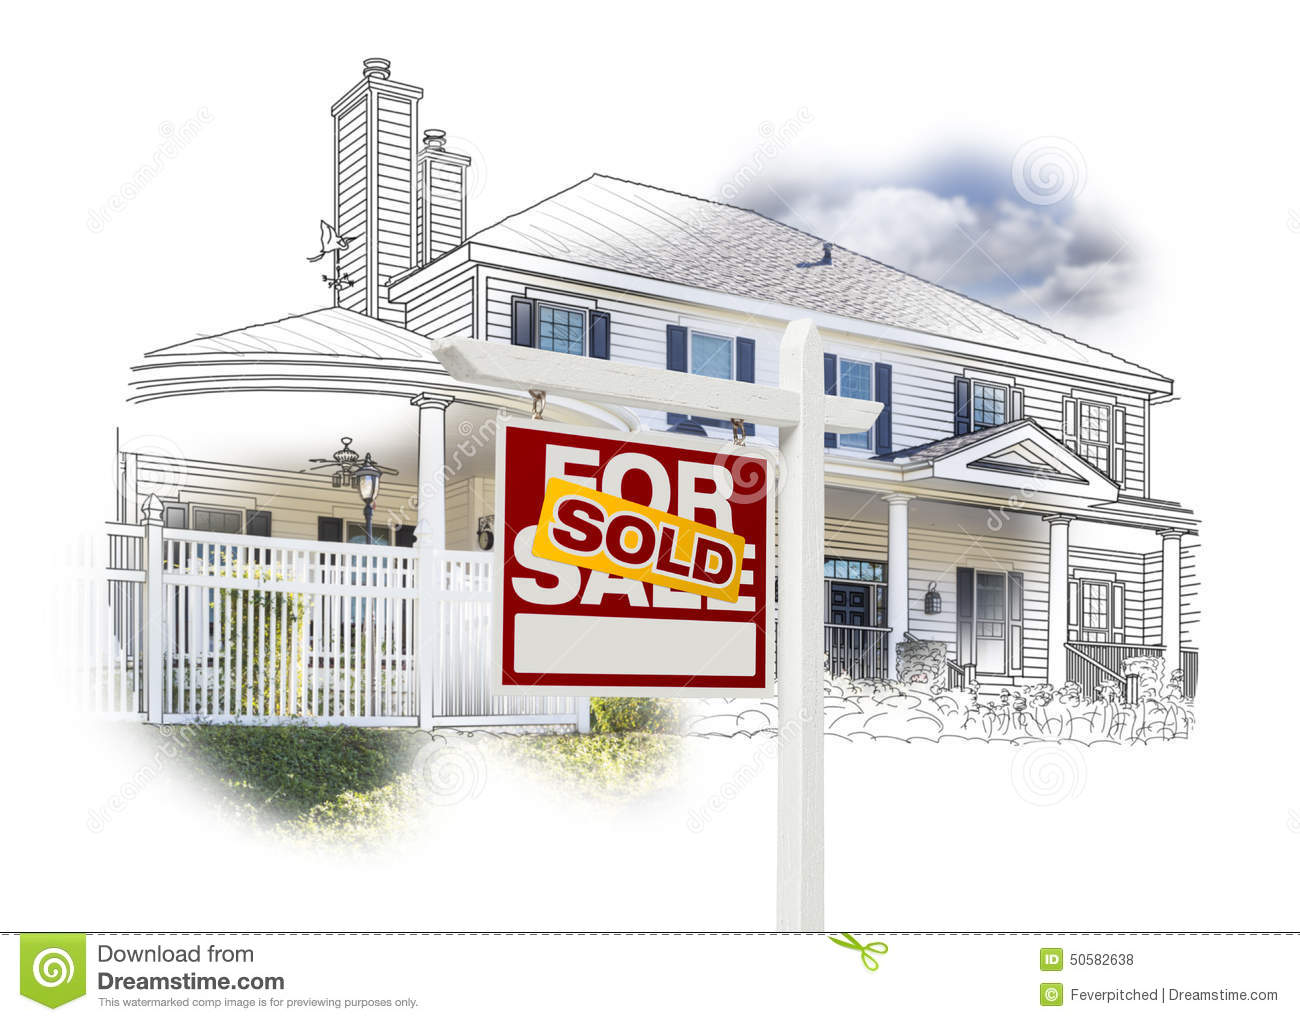 ofSold Sign in Front House Drawing and Photo on White